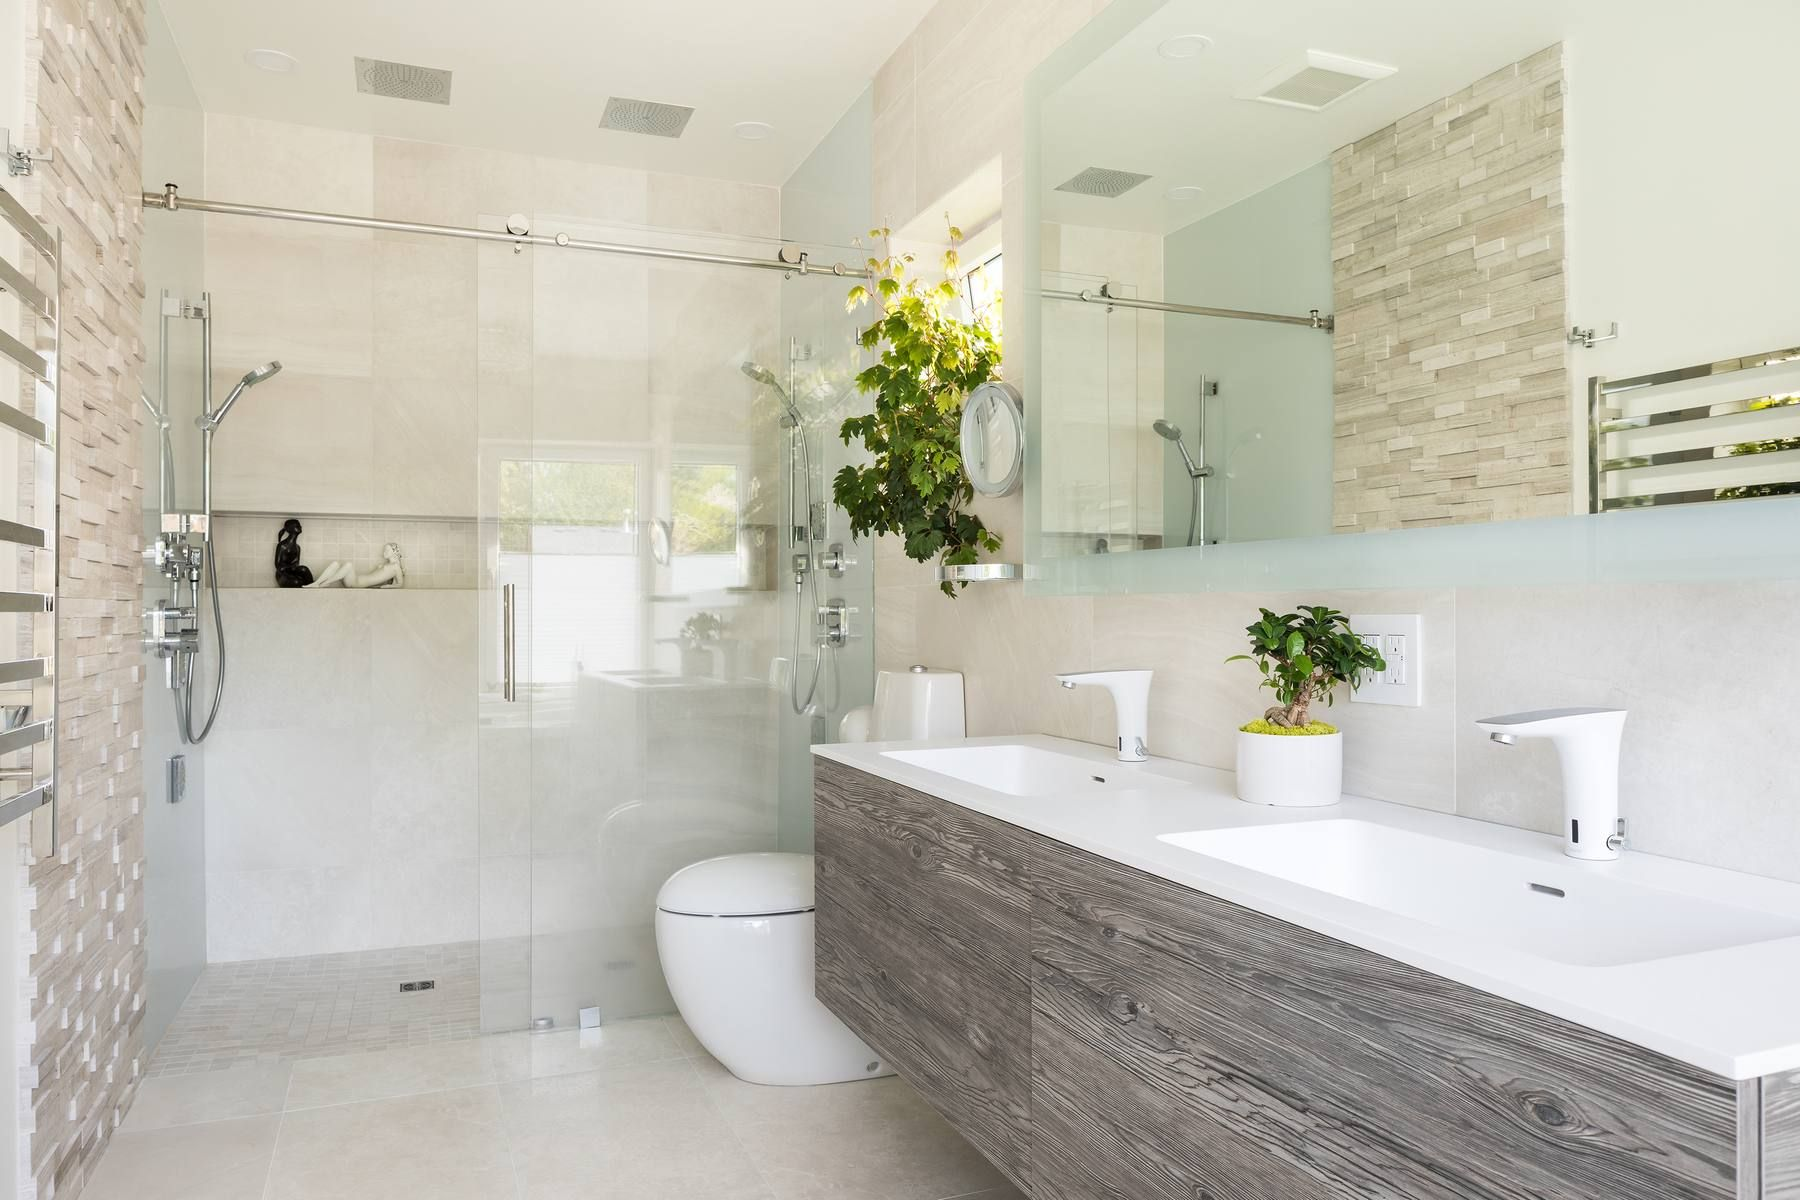 Pin by euro ceramic tile on washroom inspiration pinterest washroom find this pin and more on washroom inspiration by euroceramictile dailygadgetfo Image collections